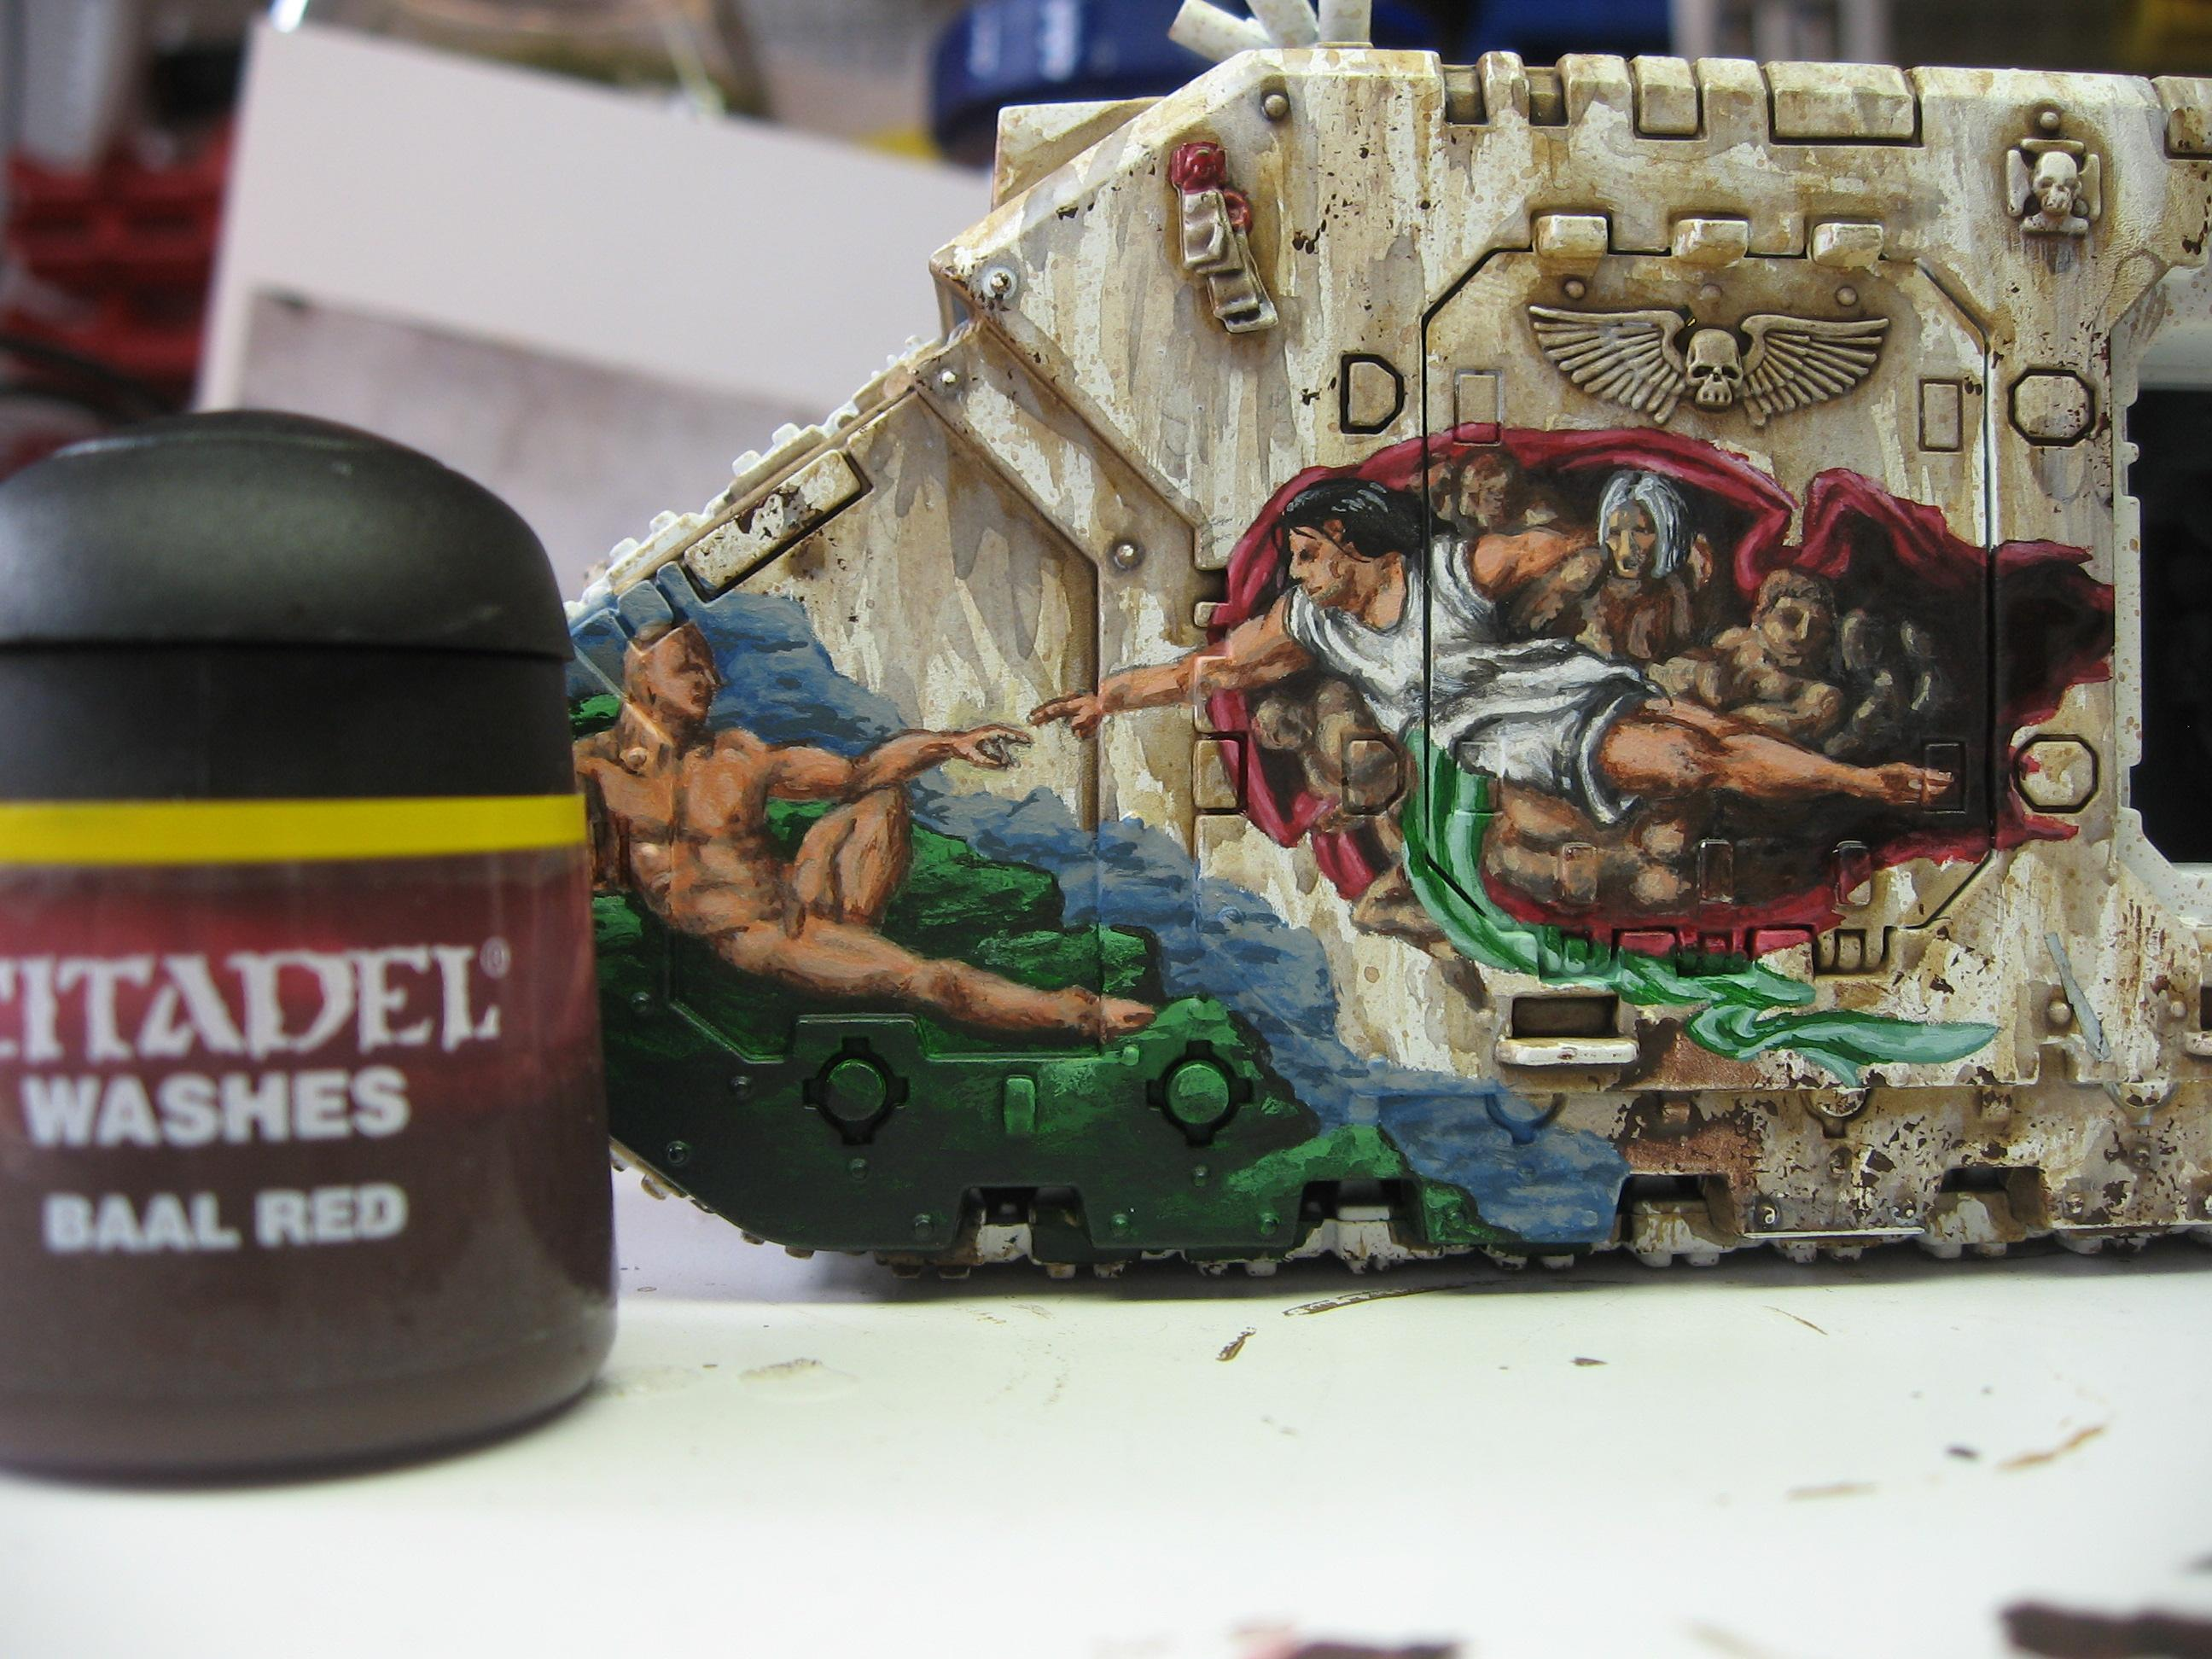 Freehand, Imperial Artwork, Space Marine Land Raider, Warhammer 40,000